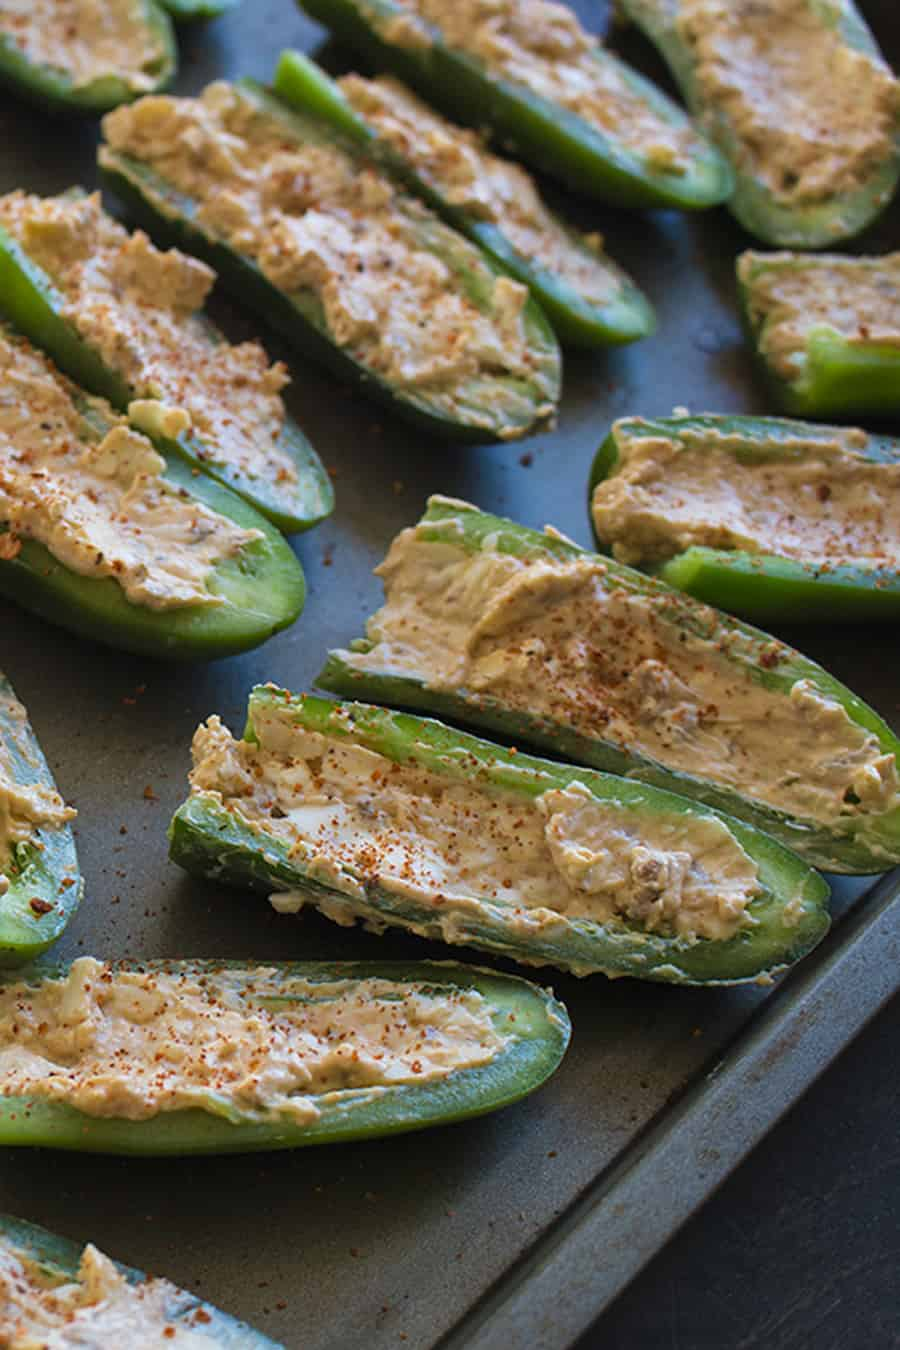 Baked Chili and Cheese Stuffed Jalapeno Poppers